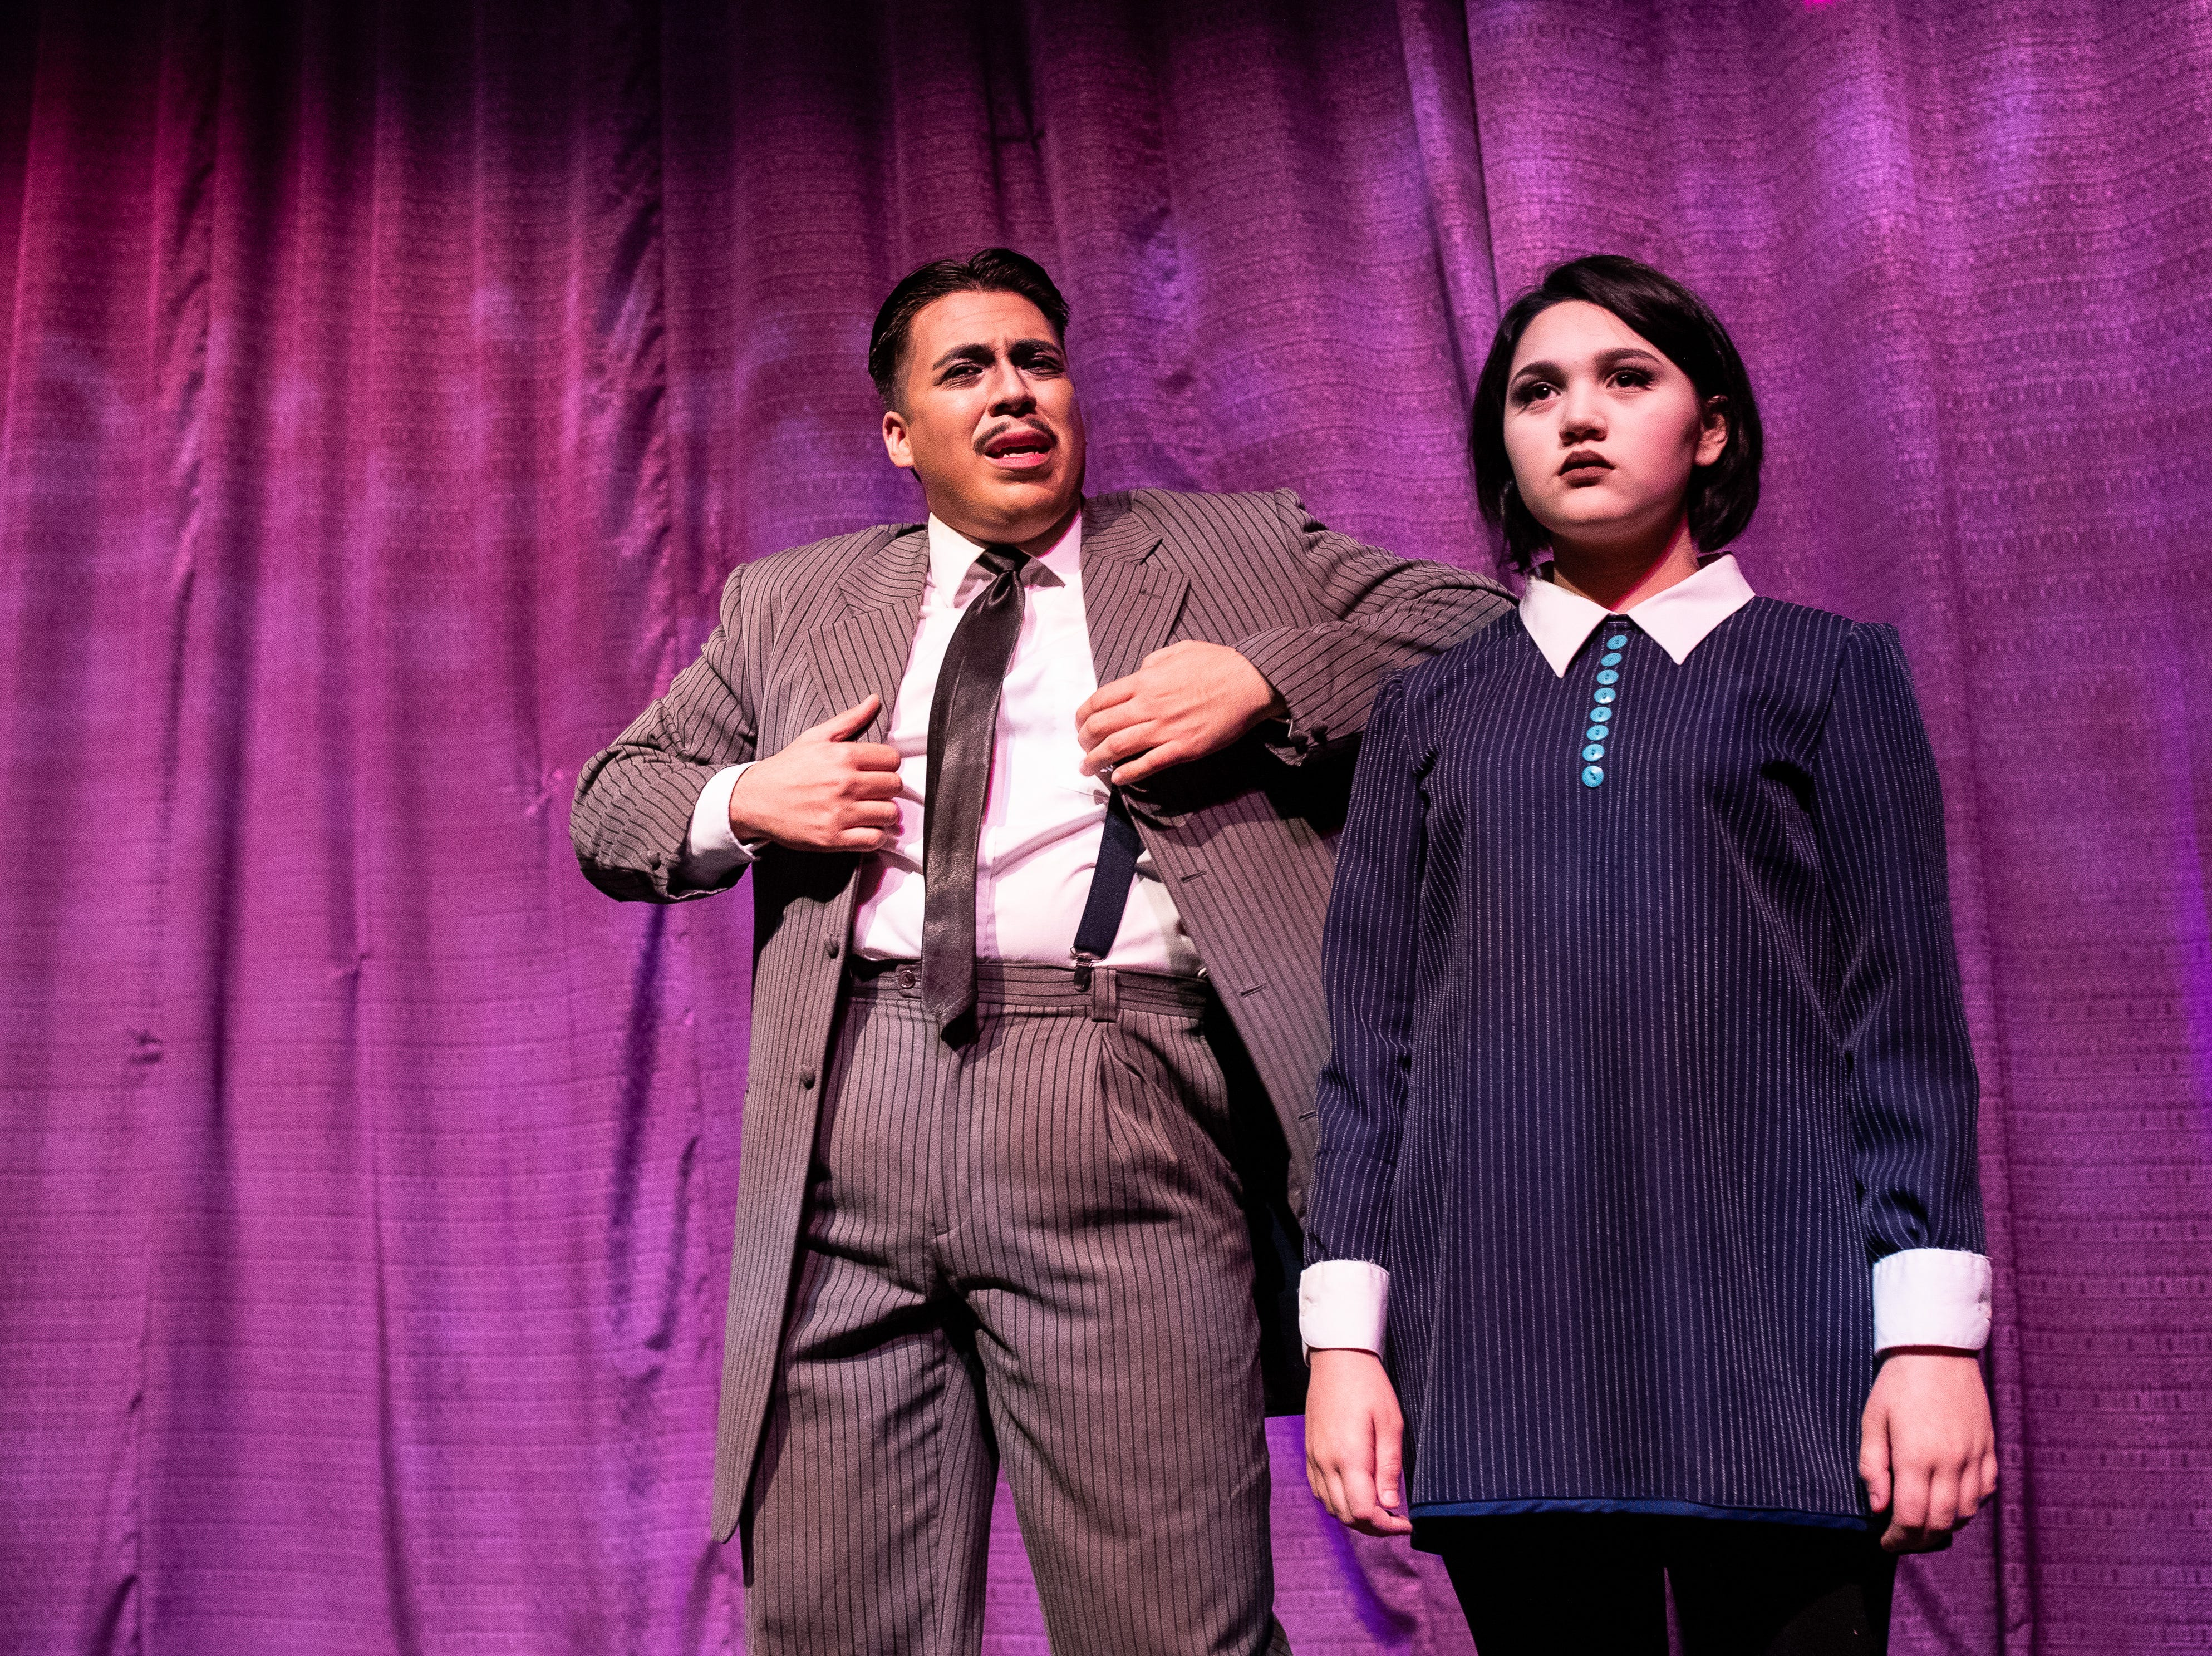 Gomez Addams played by Frank Garcia Jr. and Wednesday Addams played Eliot Ruiz in the Harbor Playhouse's production of Addams Family running from Sept. 21 - October 31st.